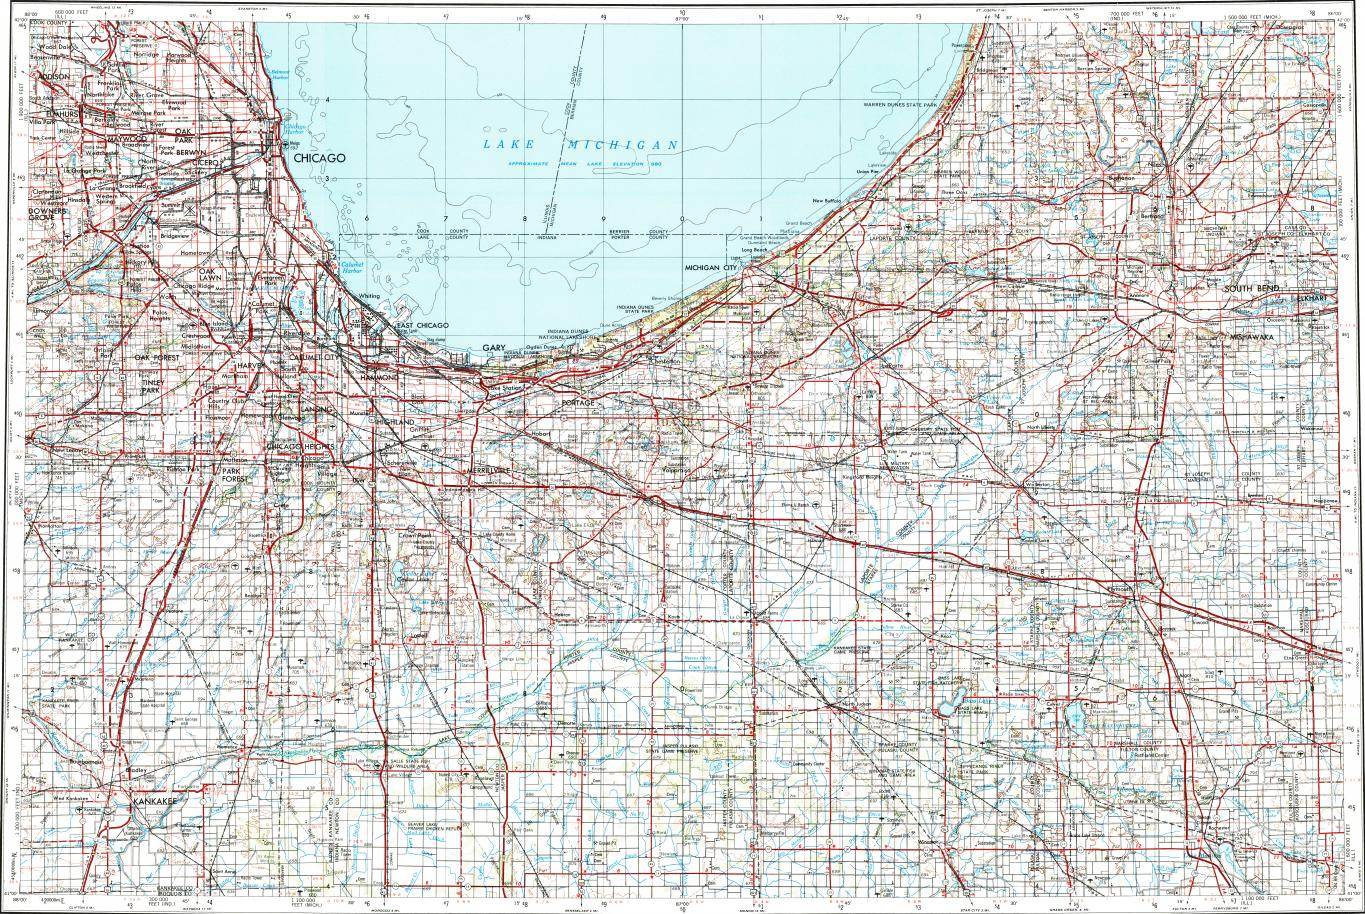 Download topographic map in area of Chicago, Gary, South Bend